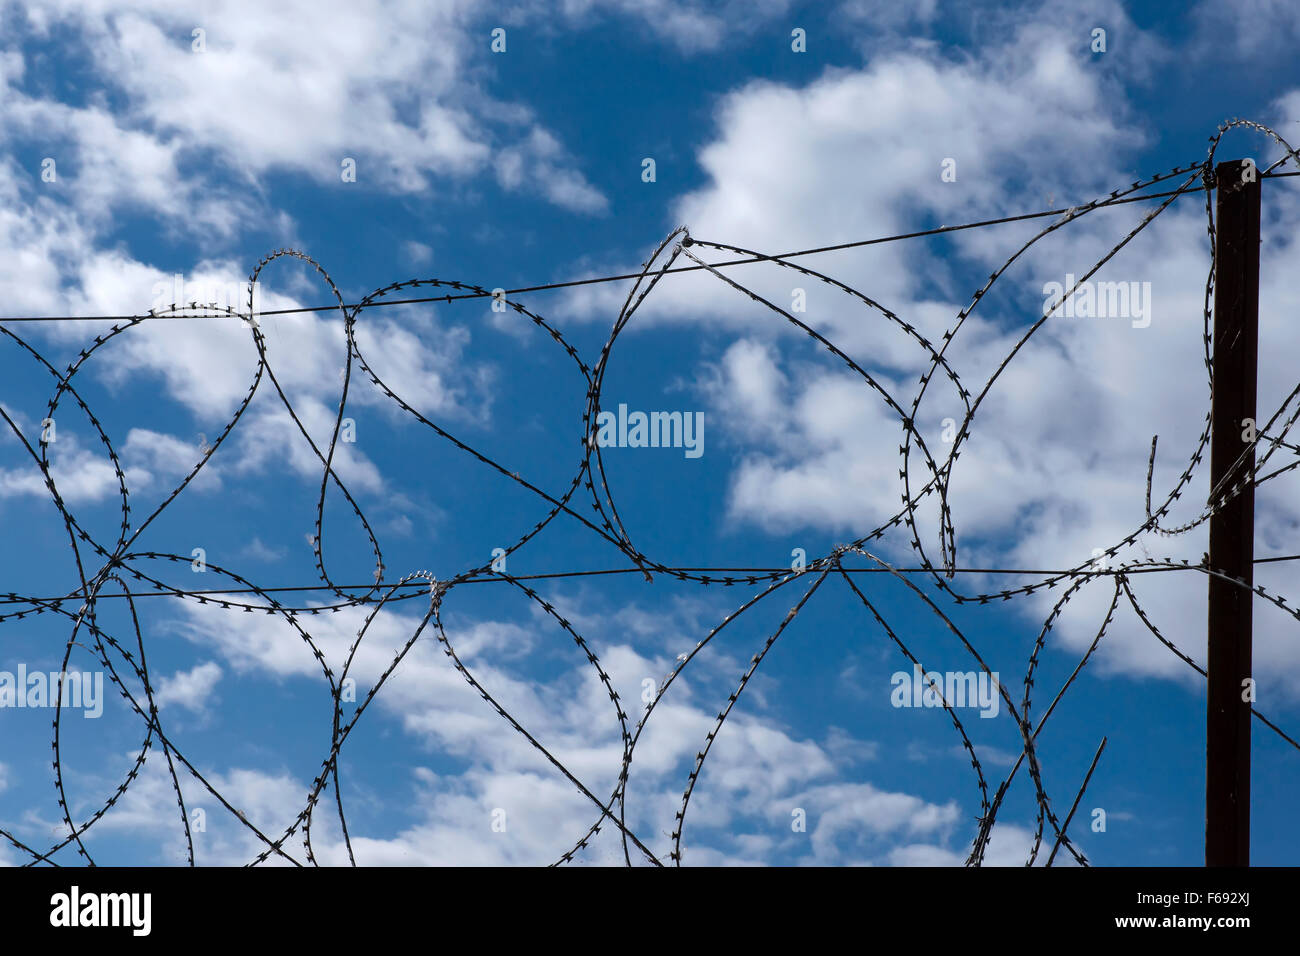 Barbed razor wire against blue cloudy sky - Stock Image